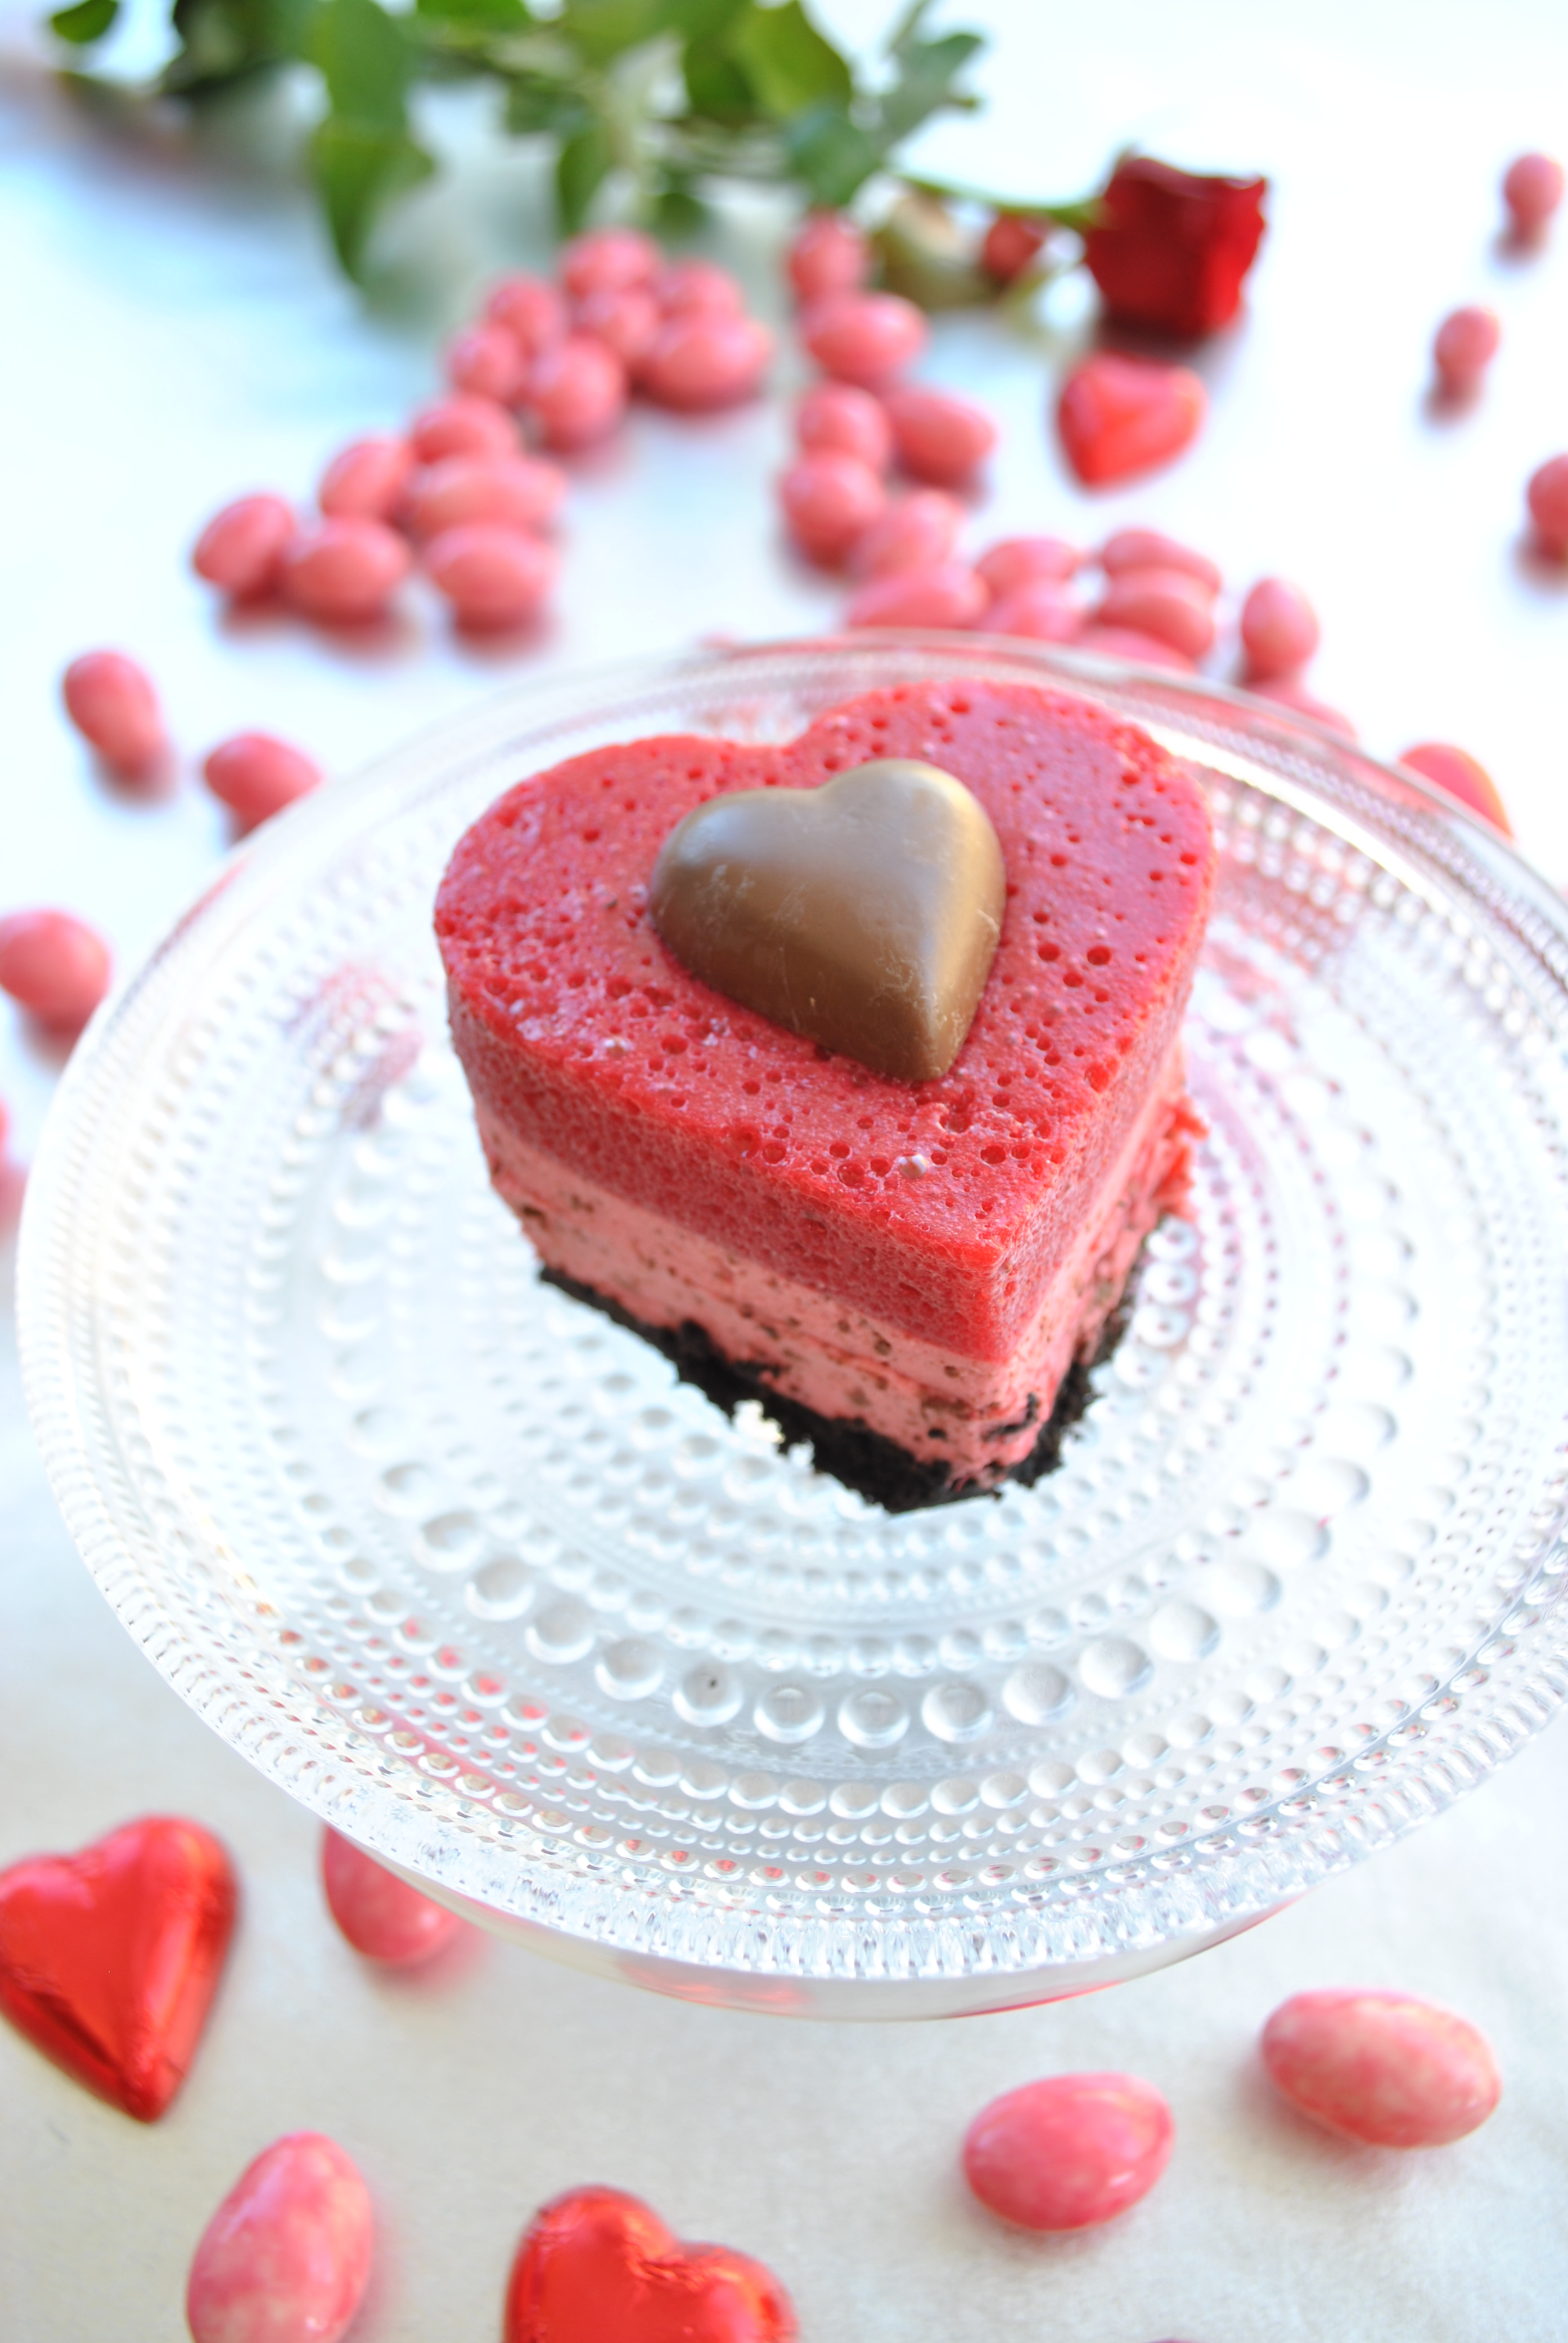 Marianne cheese cake for Valentine